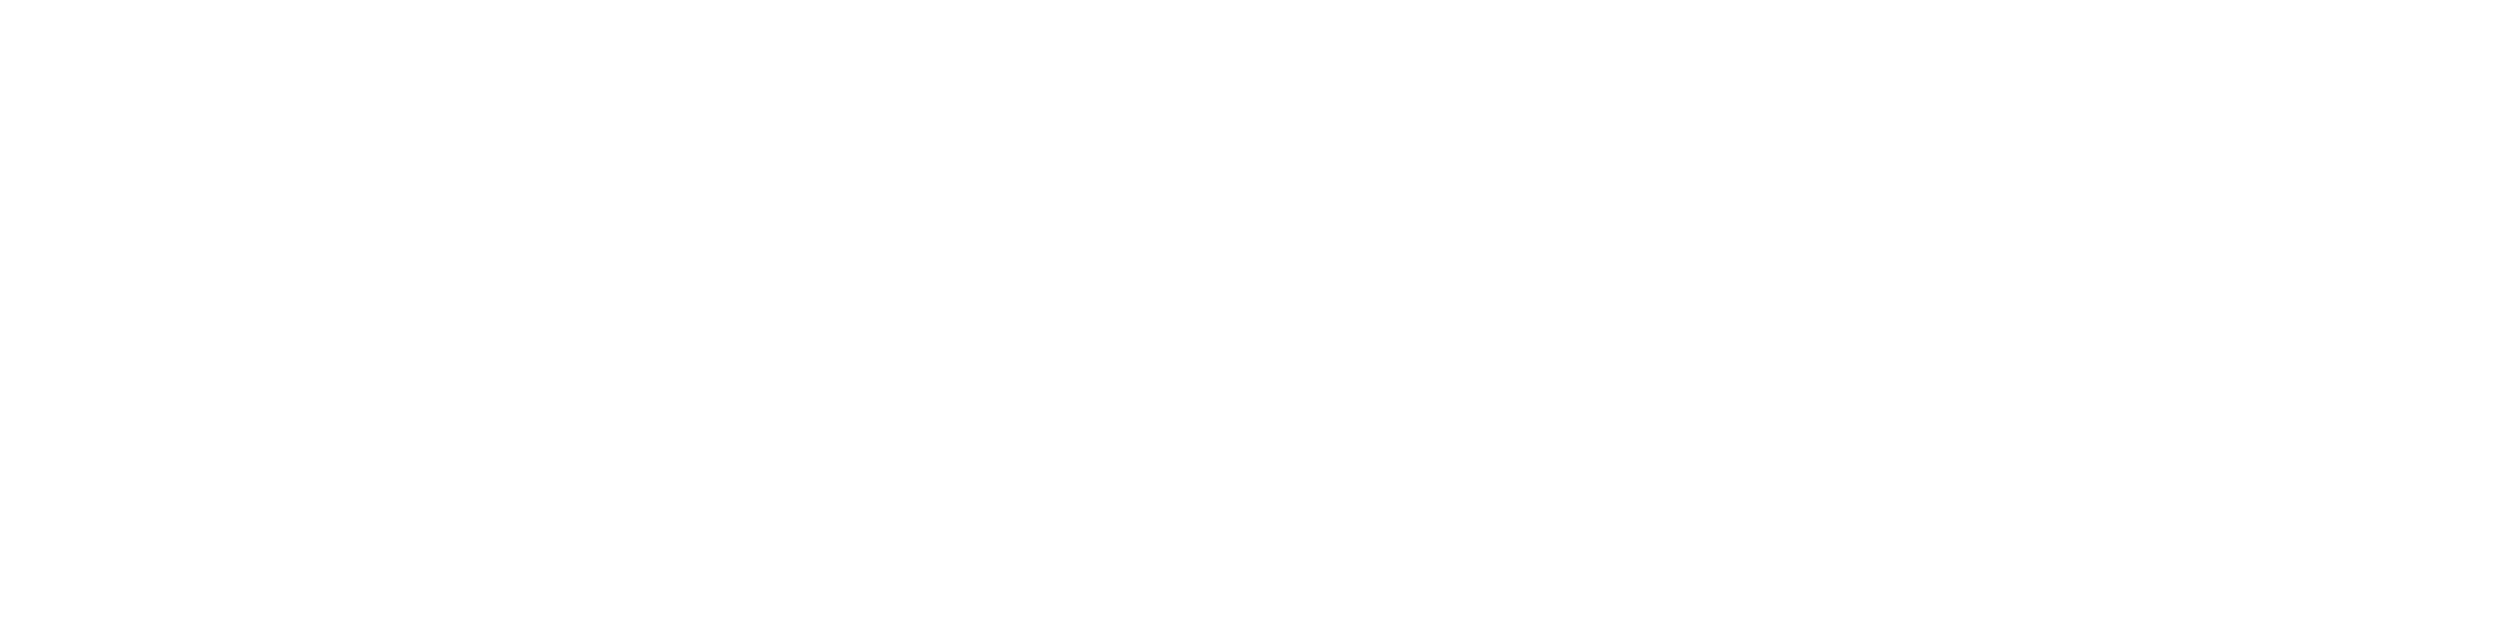 White Location Marker Banner.png